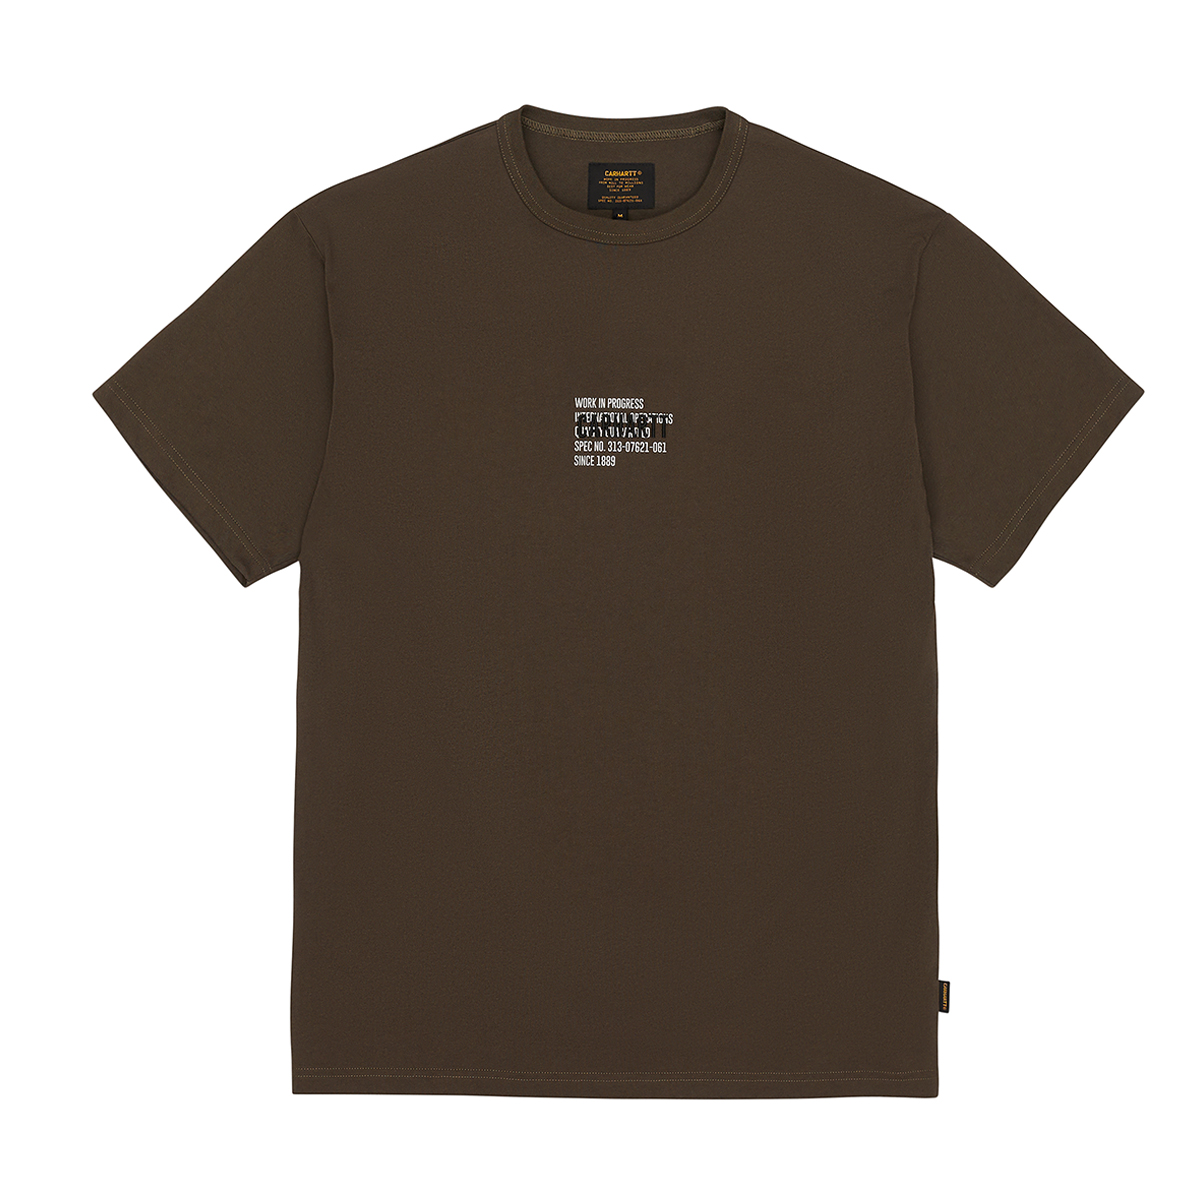 S/S Hector T-shirt